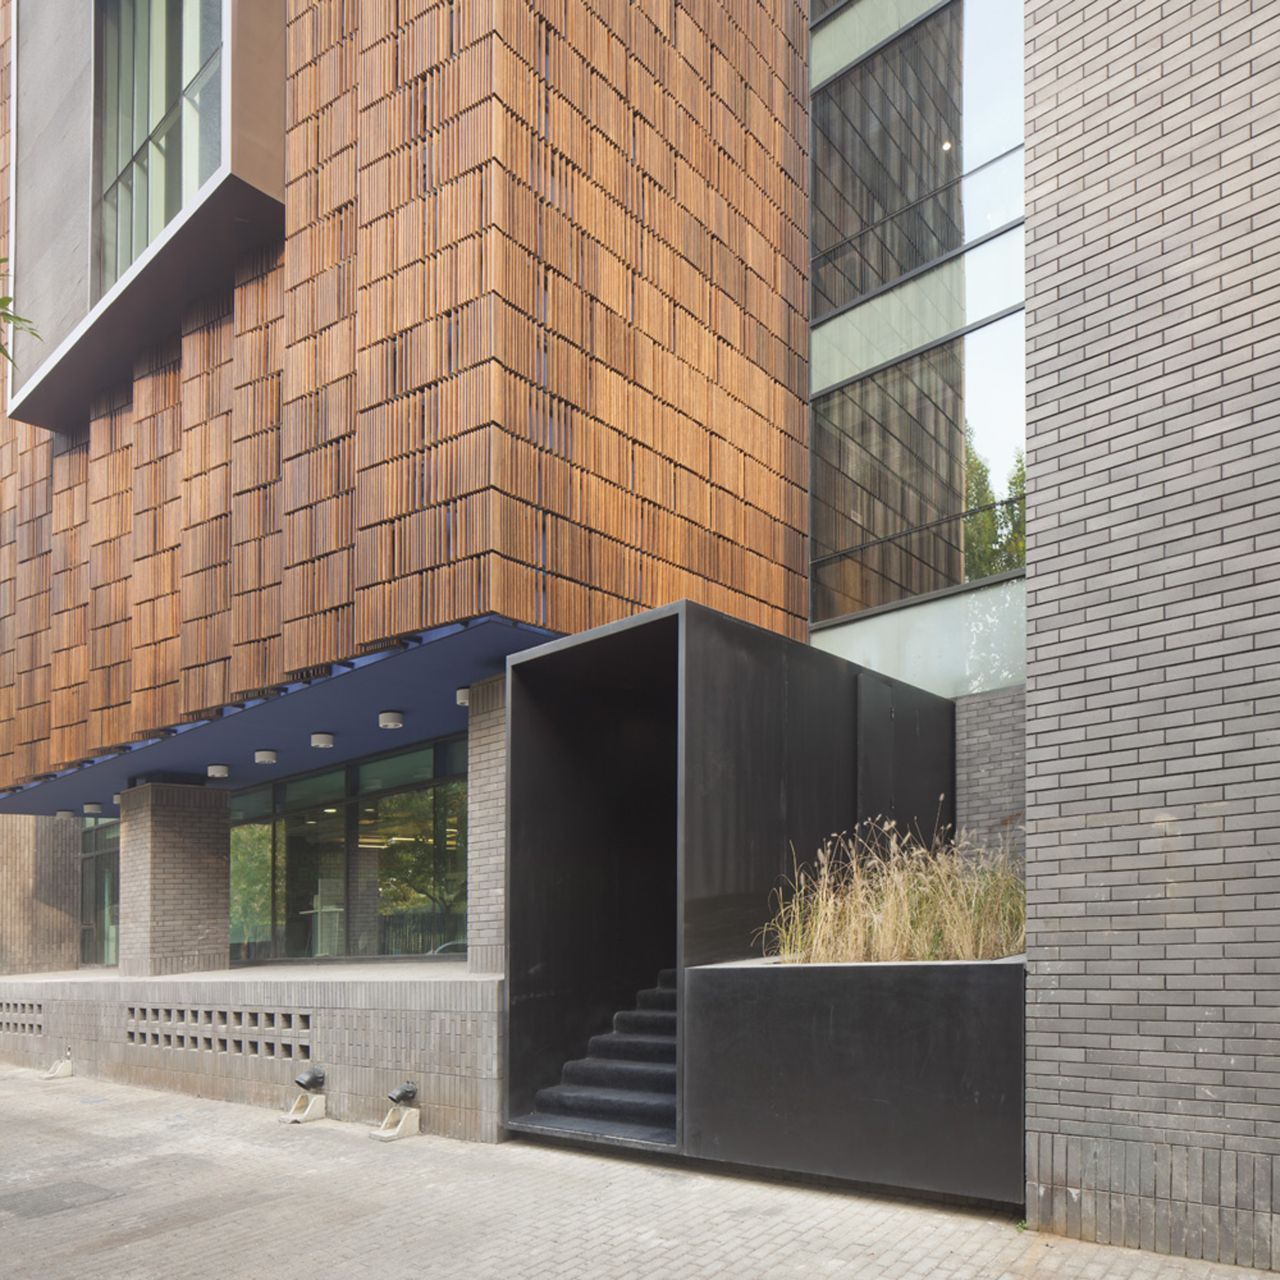 Brick wood glass stone facade with sheet metal entryway for Brick and stone house facades